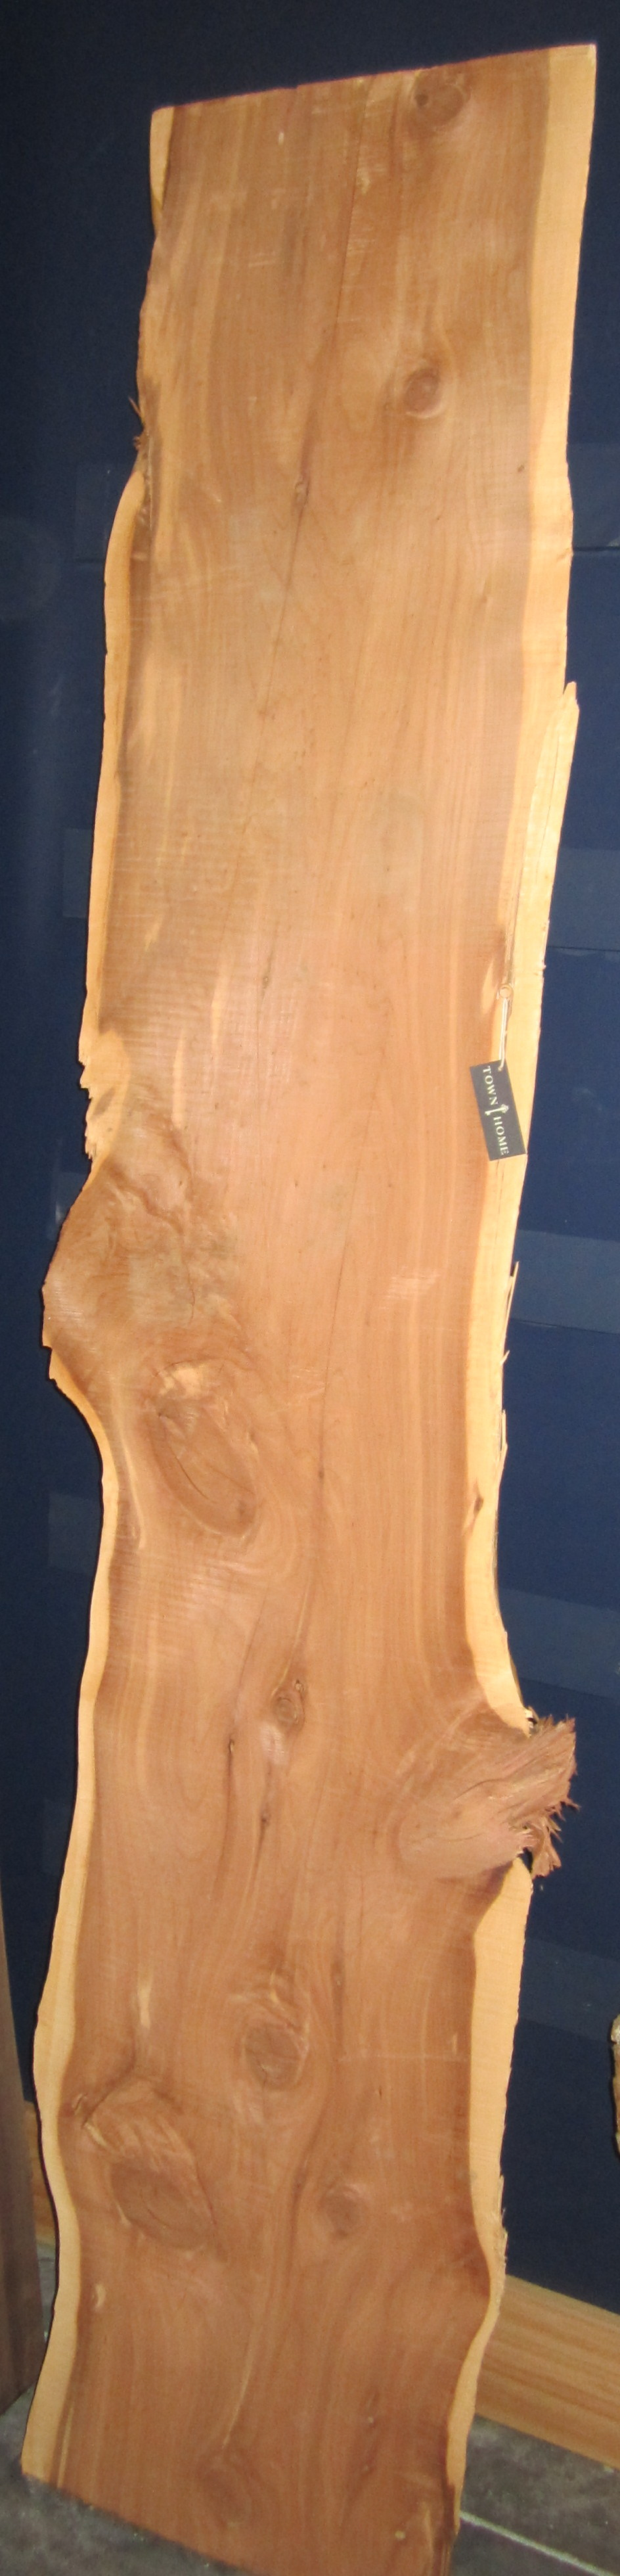 Red Cedar Slab/Mantel